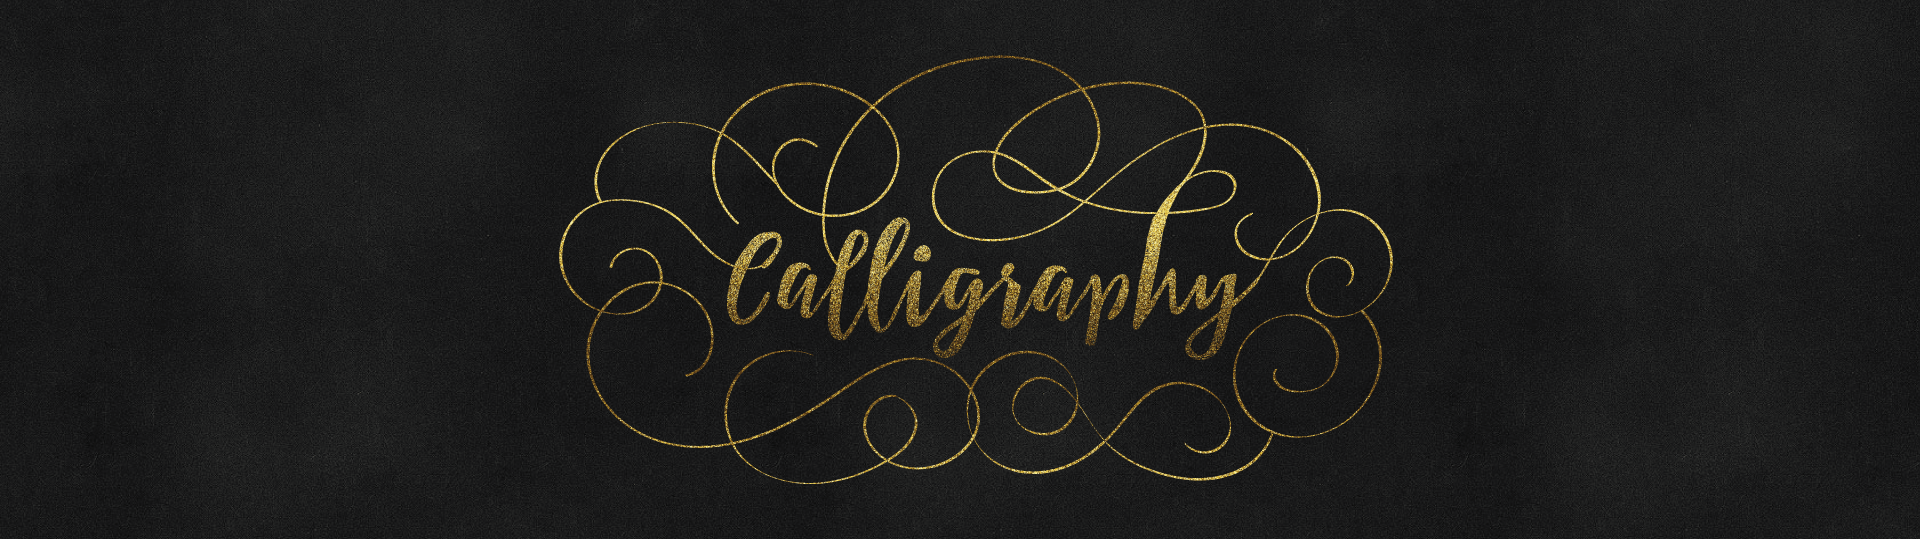 60 Free Calligraphy Fonts To Bring Charm To Your Designs Words